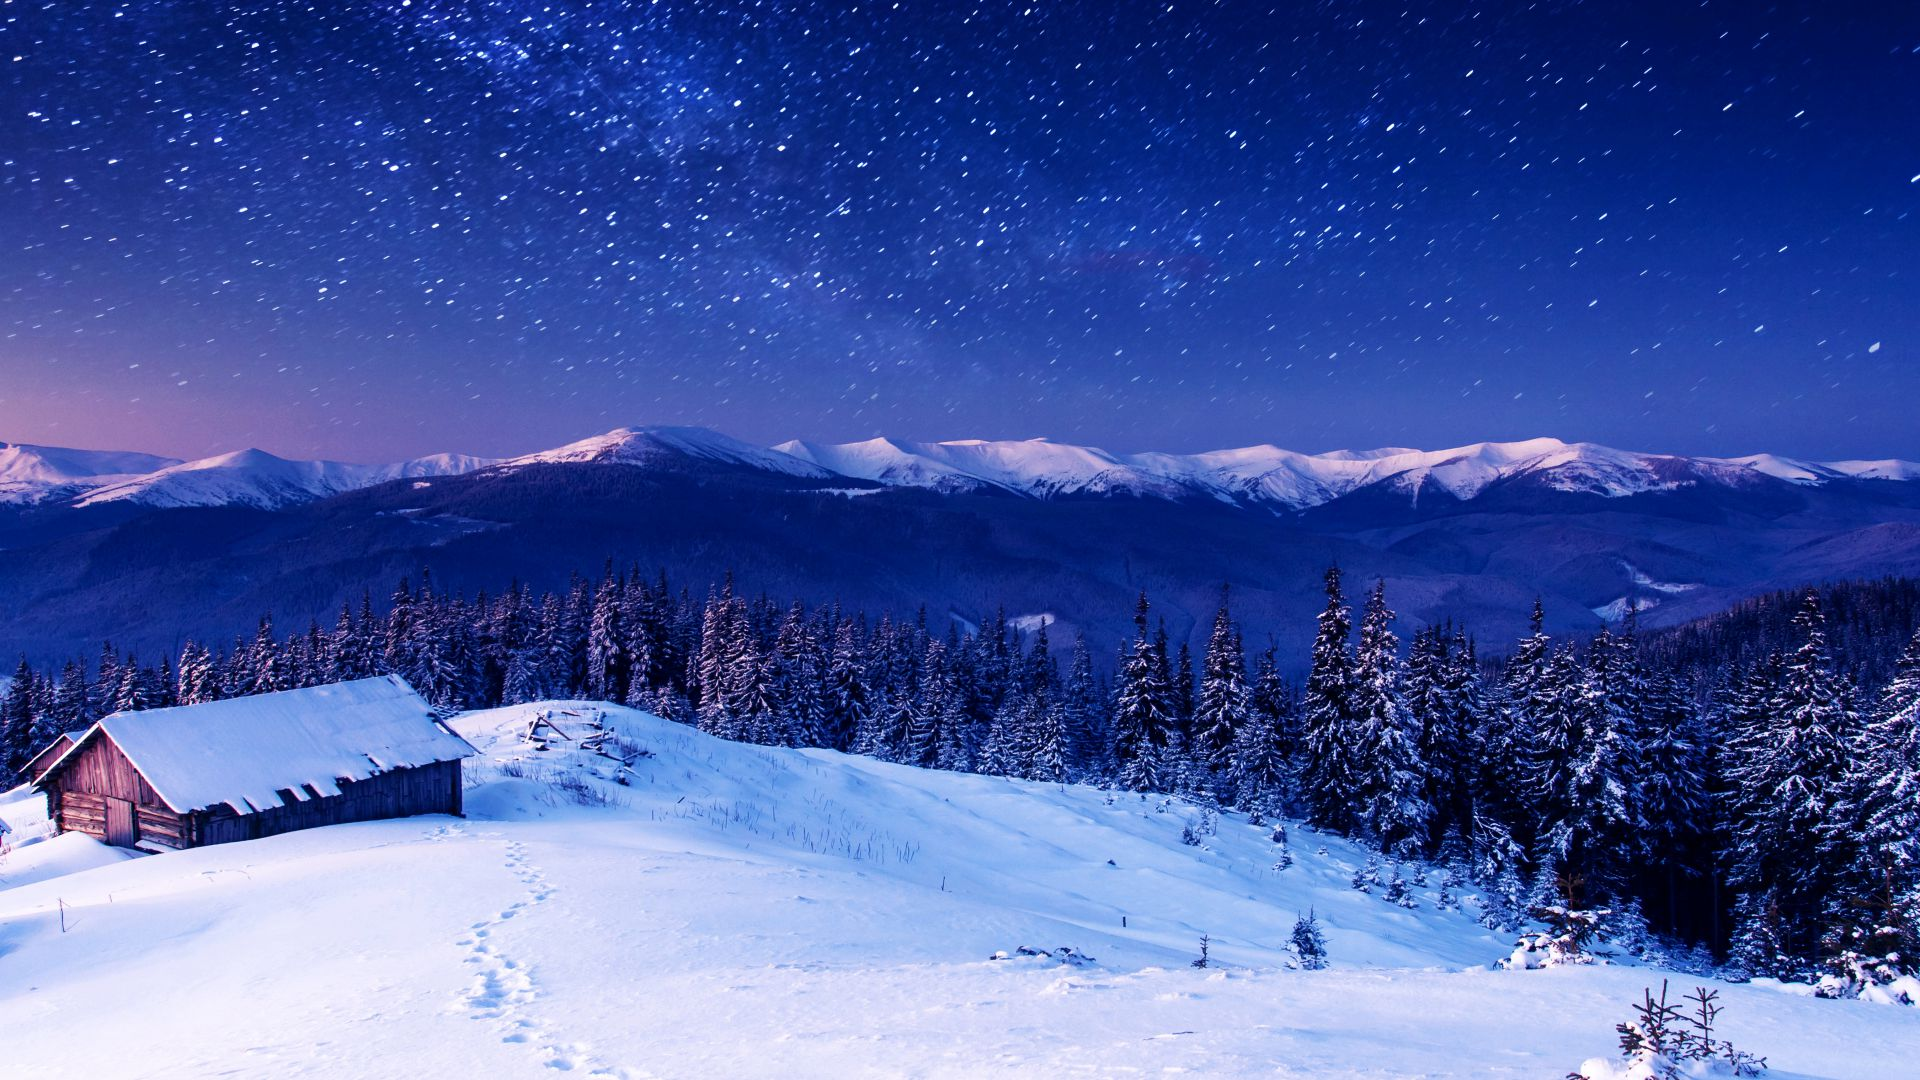 Mountains, 5k, 4k wallpaper, 8k, night, stars, trees, sky, snow (horizontal)